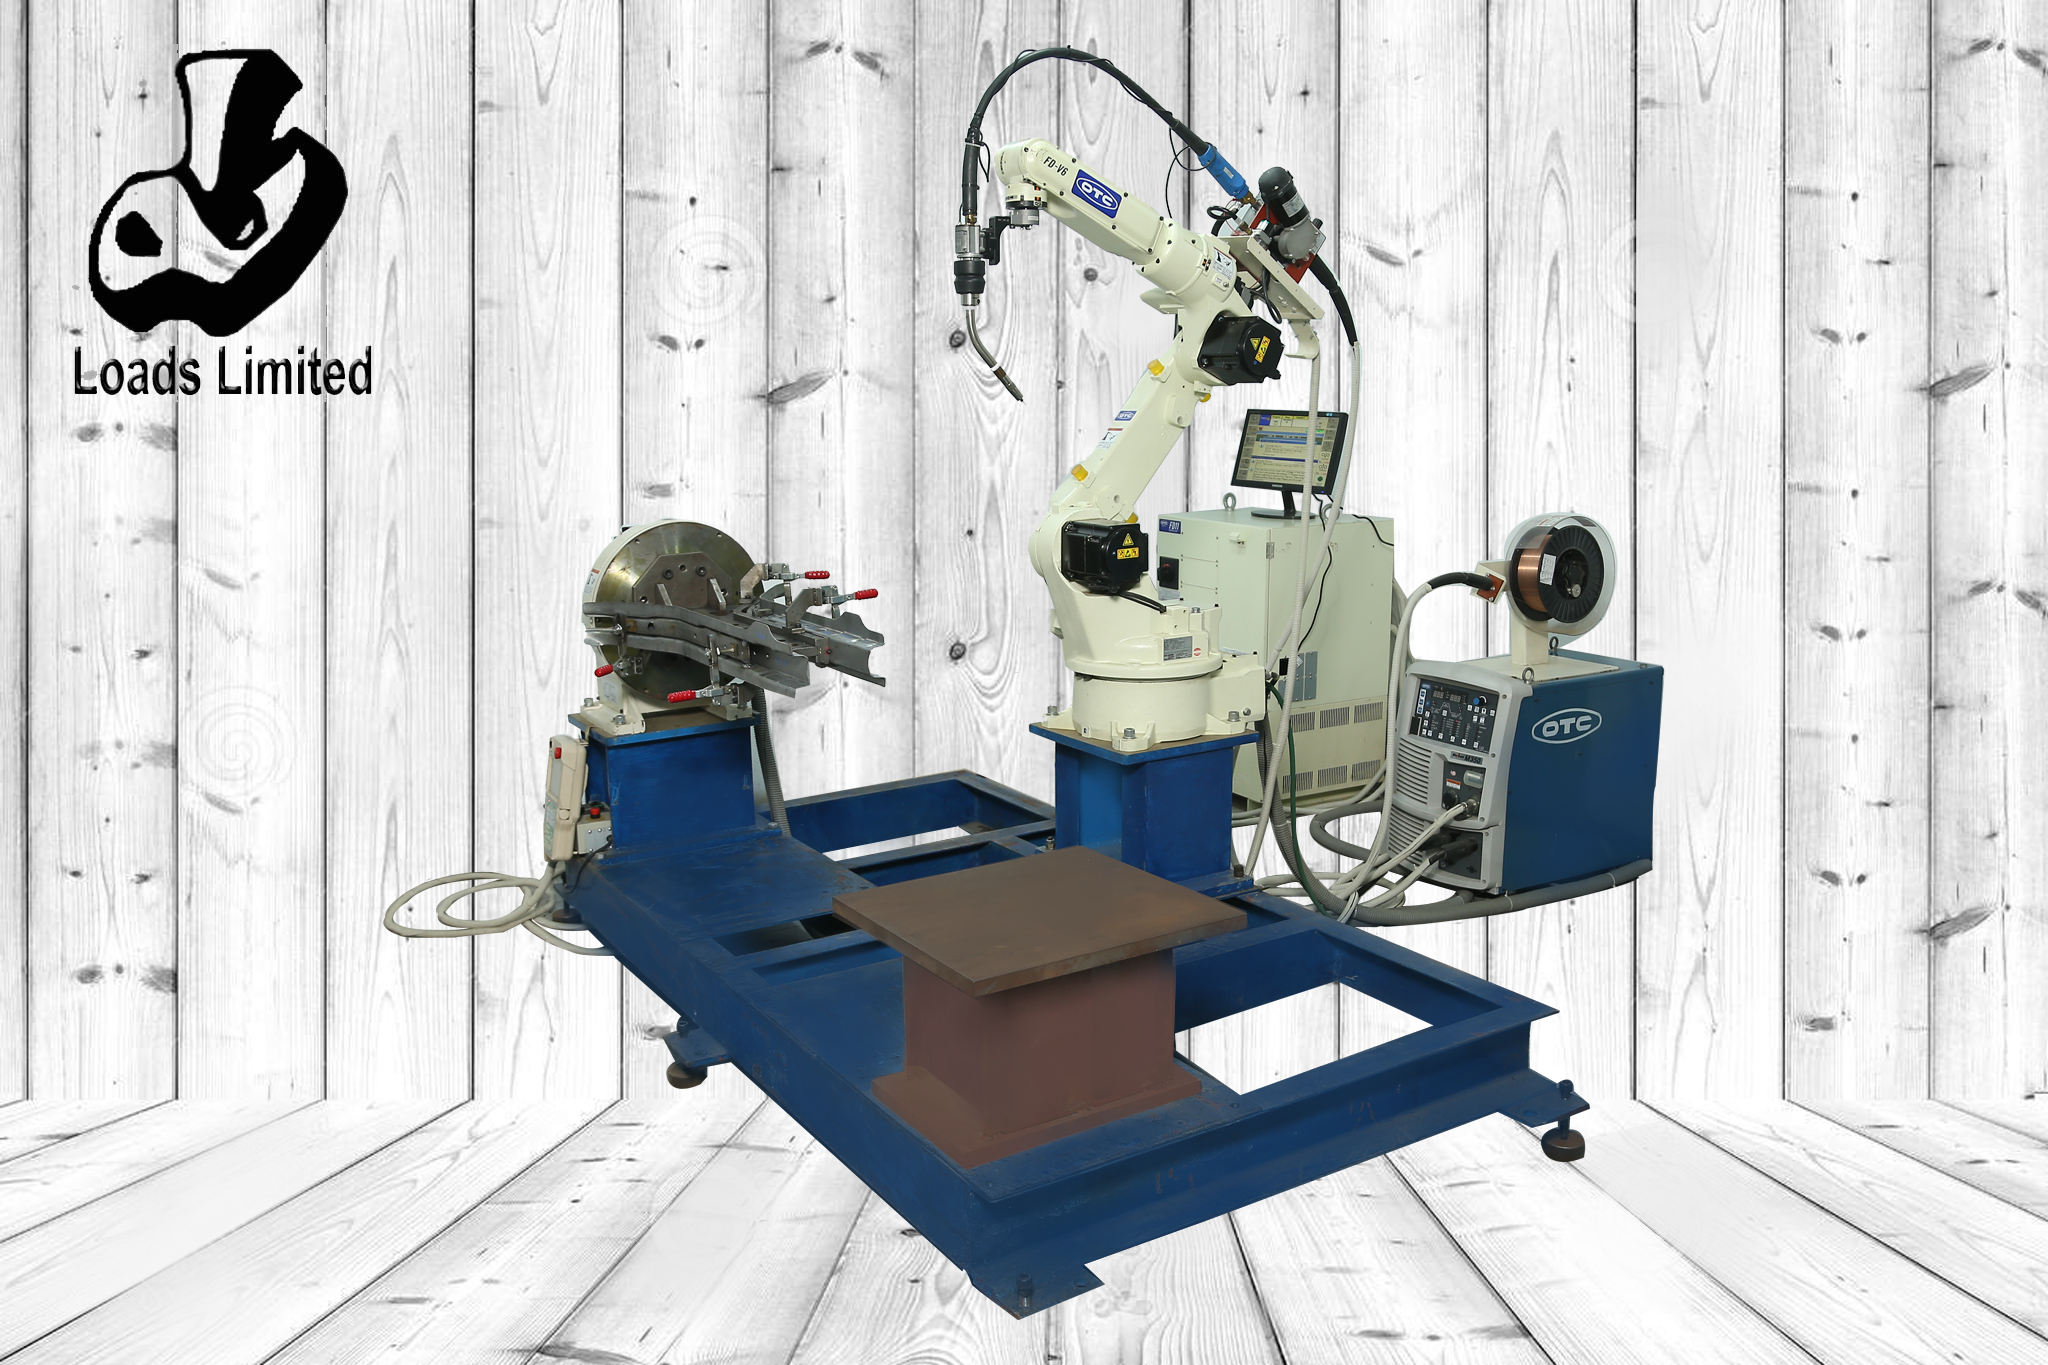 Robot Laser Welding with 6-Axis Robot